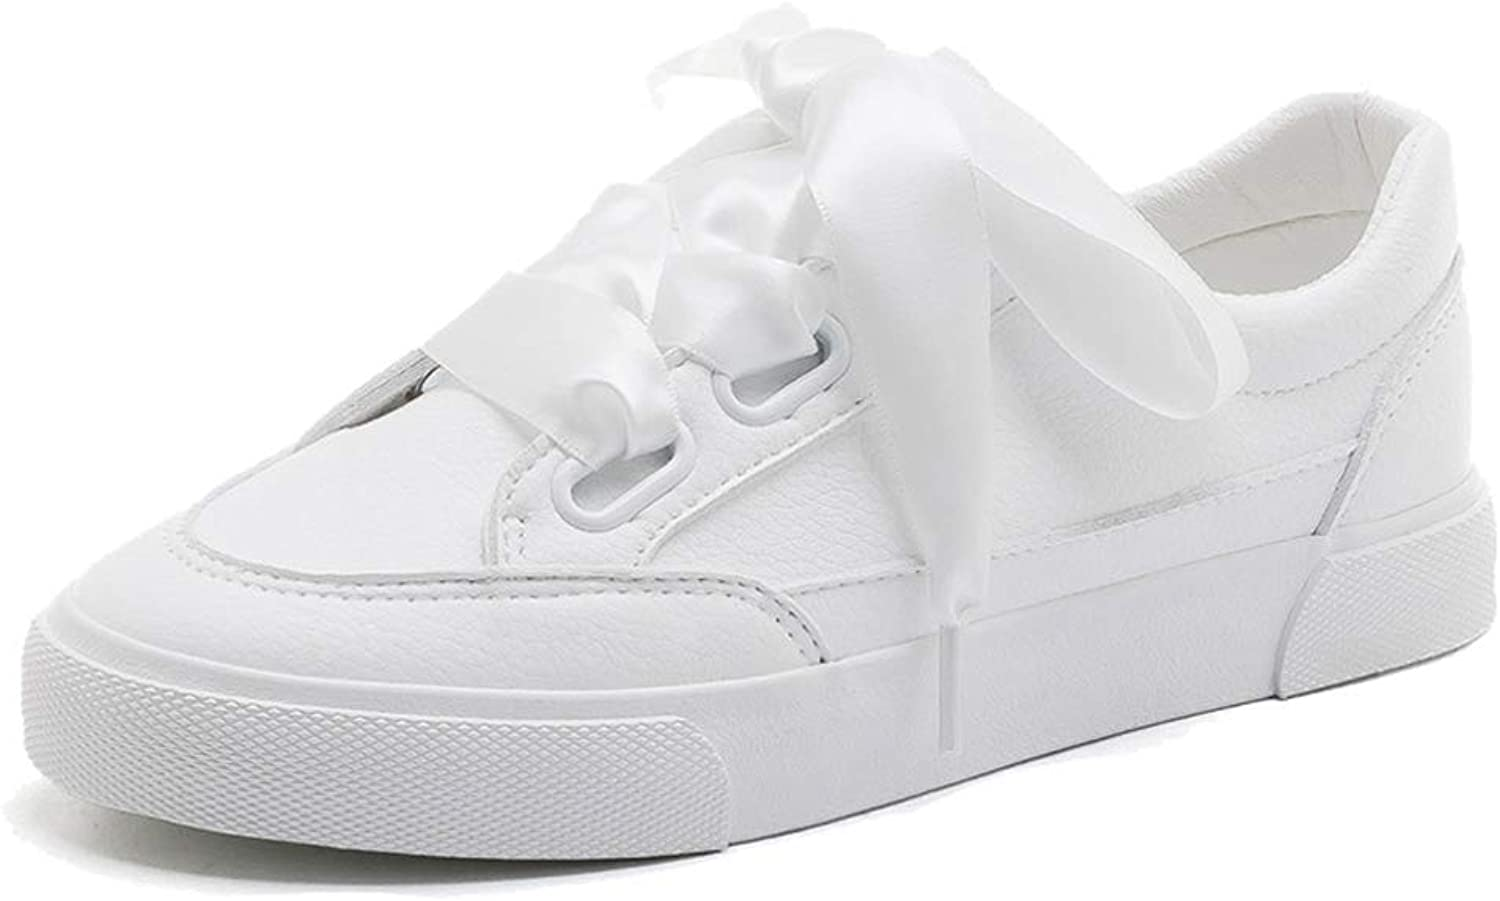 Sweet PU Leather White Flat Low Cut shoes Fashion Casual Lace Up Sneakers